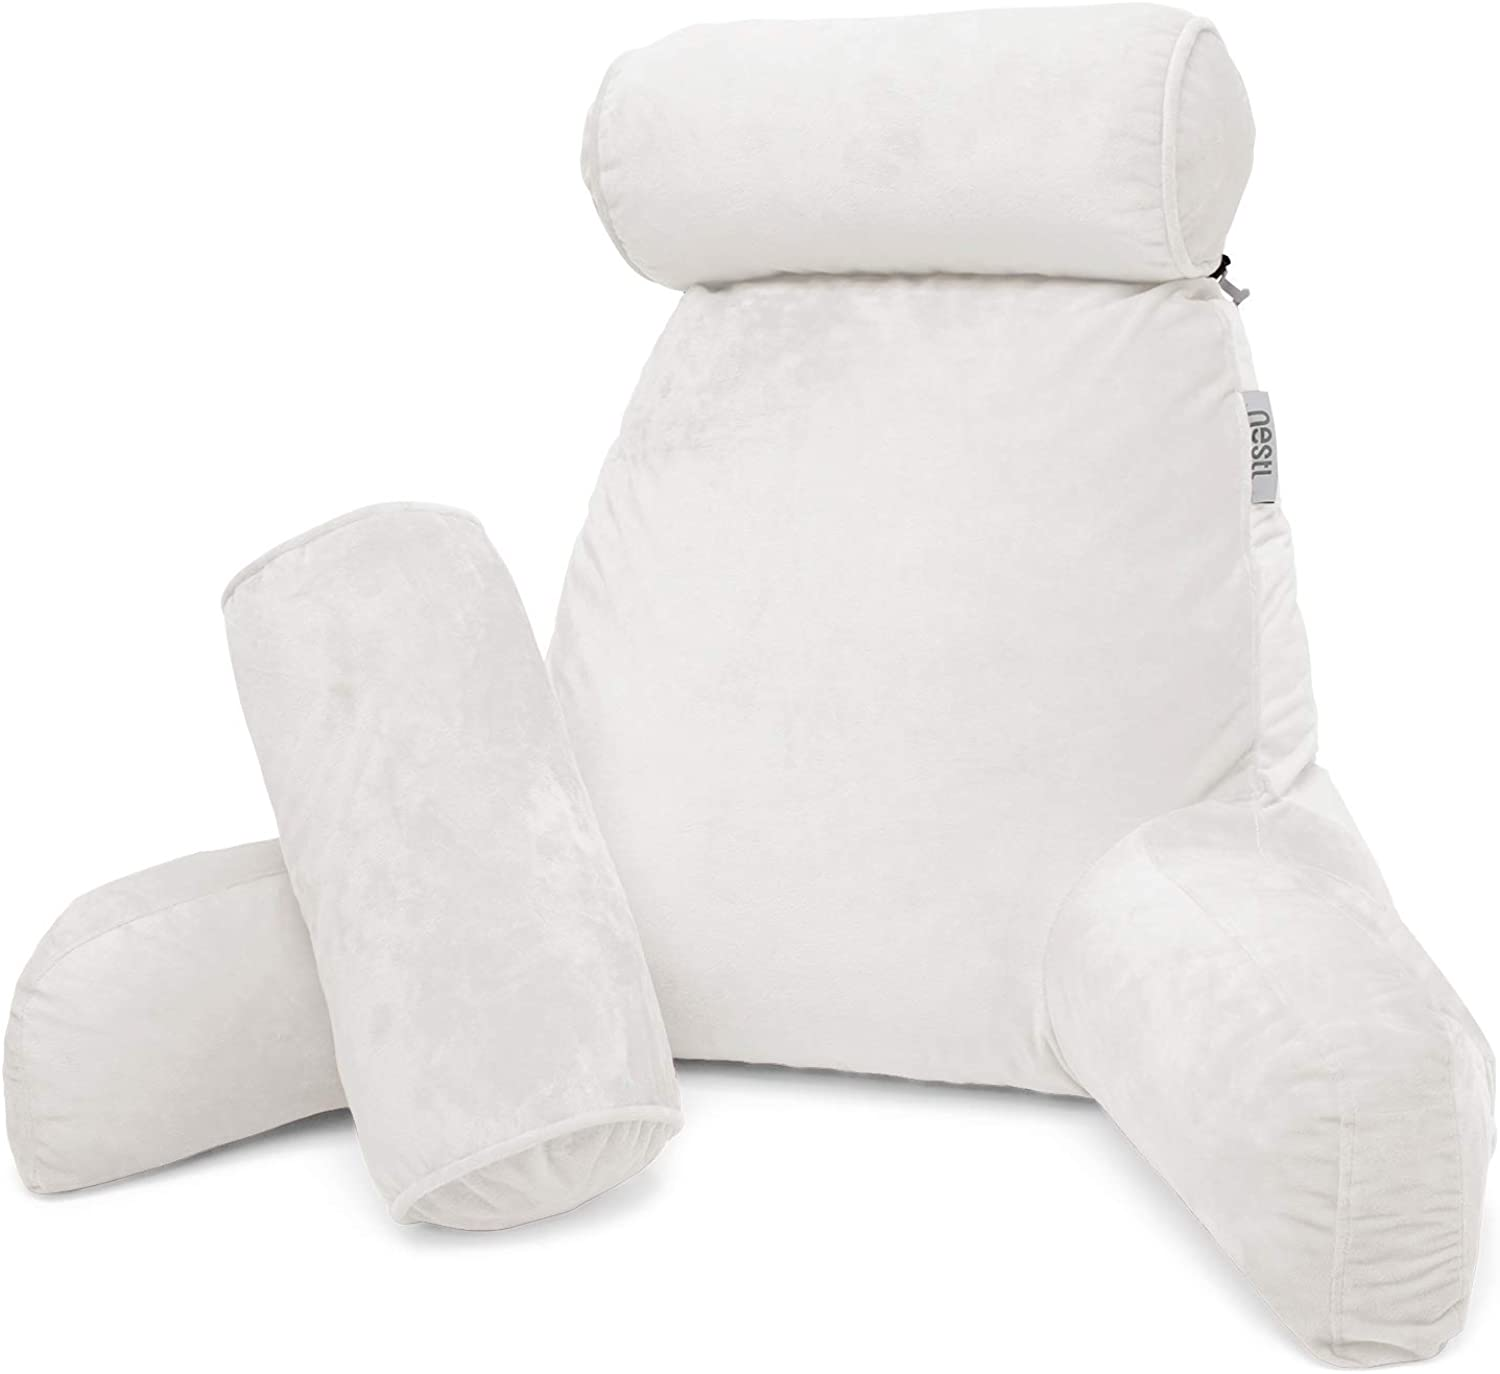 Nestl Reading Pillow, Includes 1 Extra Large Bed Rest Pillow with Arms and Pockets + 2 Detachable Pillows - Premium Shredded Memory Foam TV Pillow, Neck Roll & Lumbar Support Pillow - Set of 3 - White